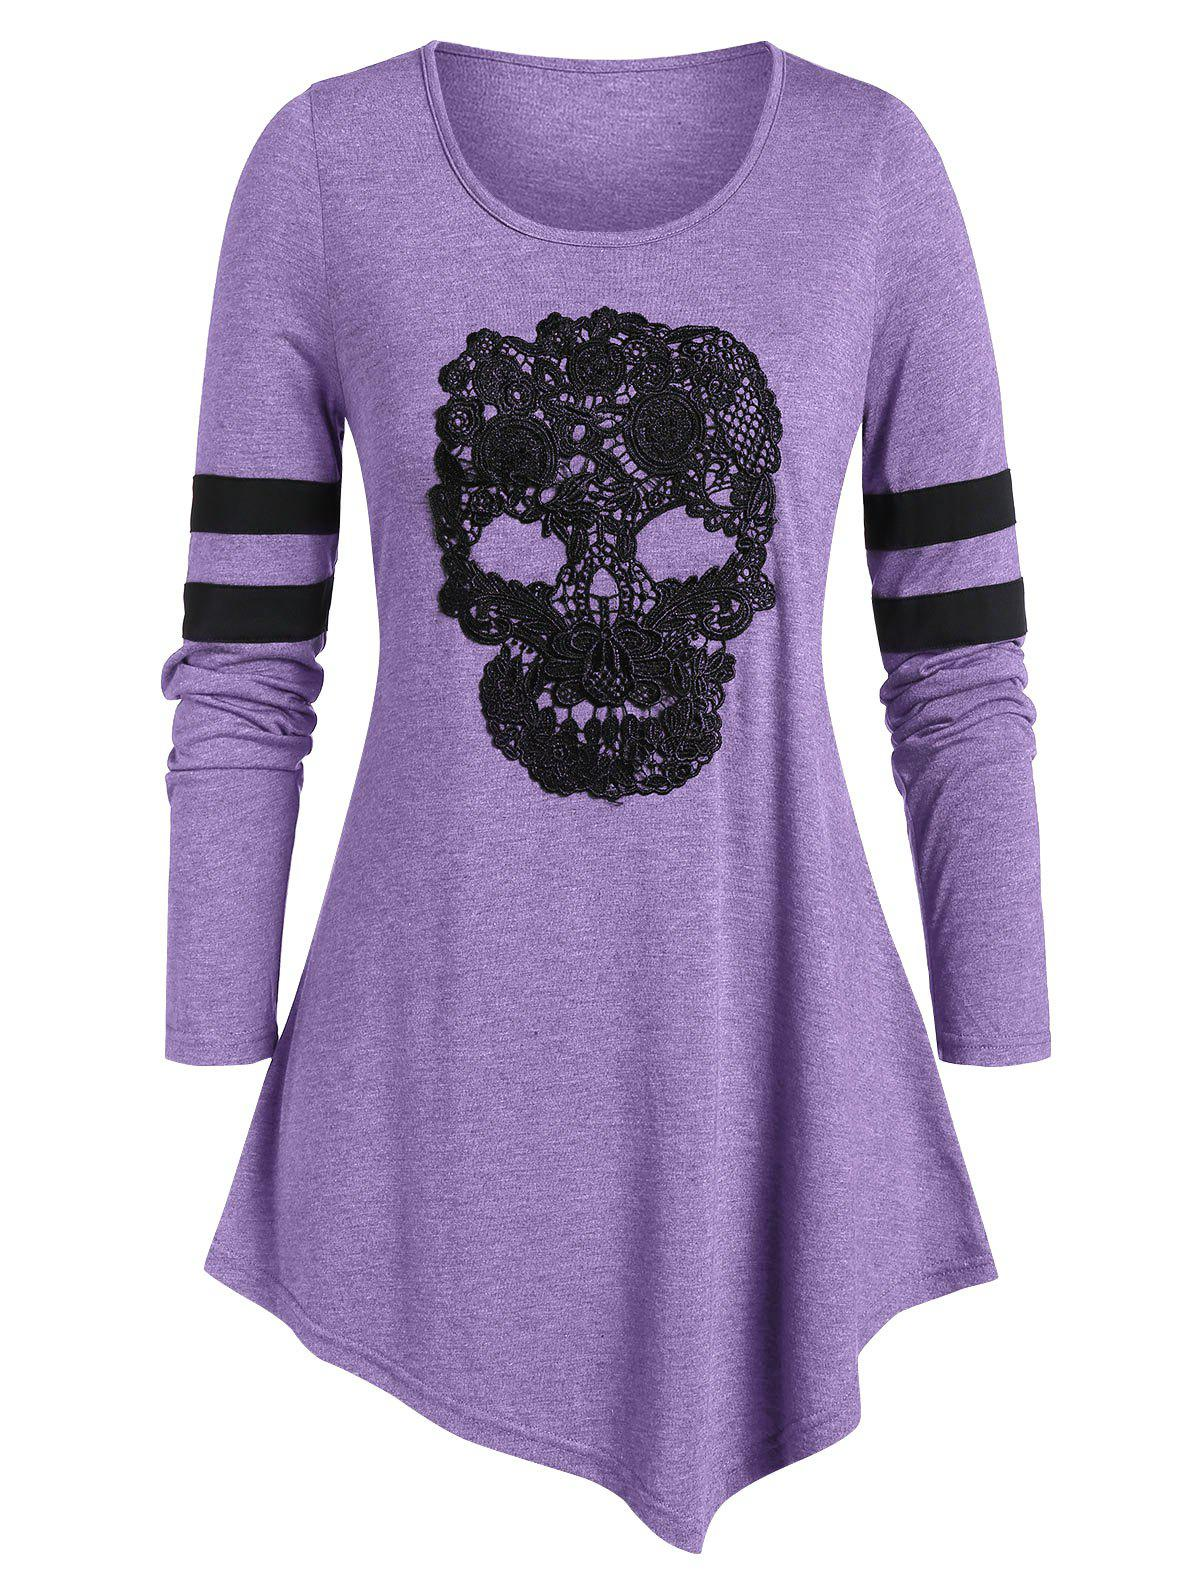 Plus Size Long Sleeve Skull Print Asymmetrical T Shirt - MEDIUM PURPLE L